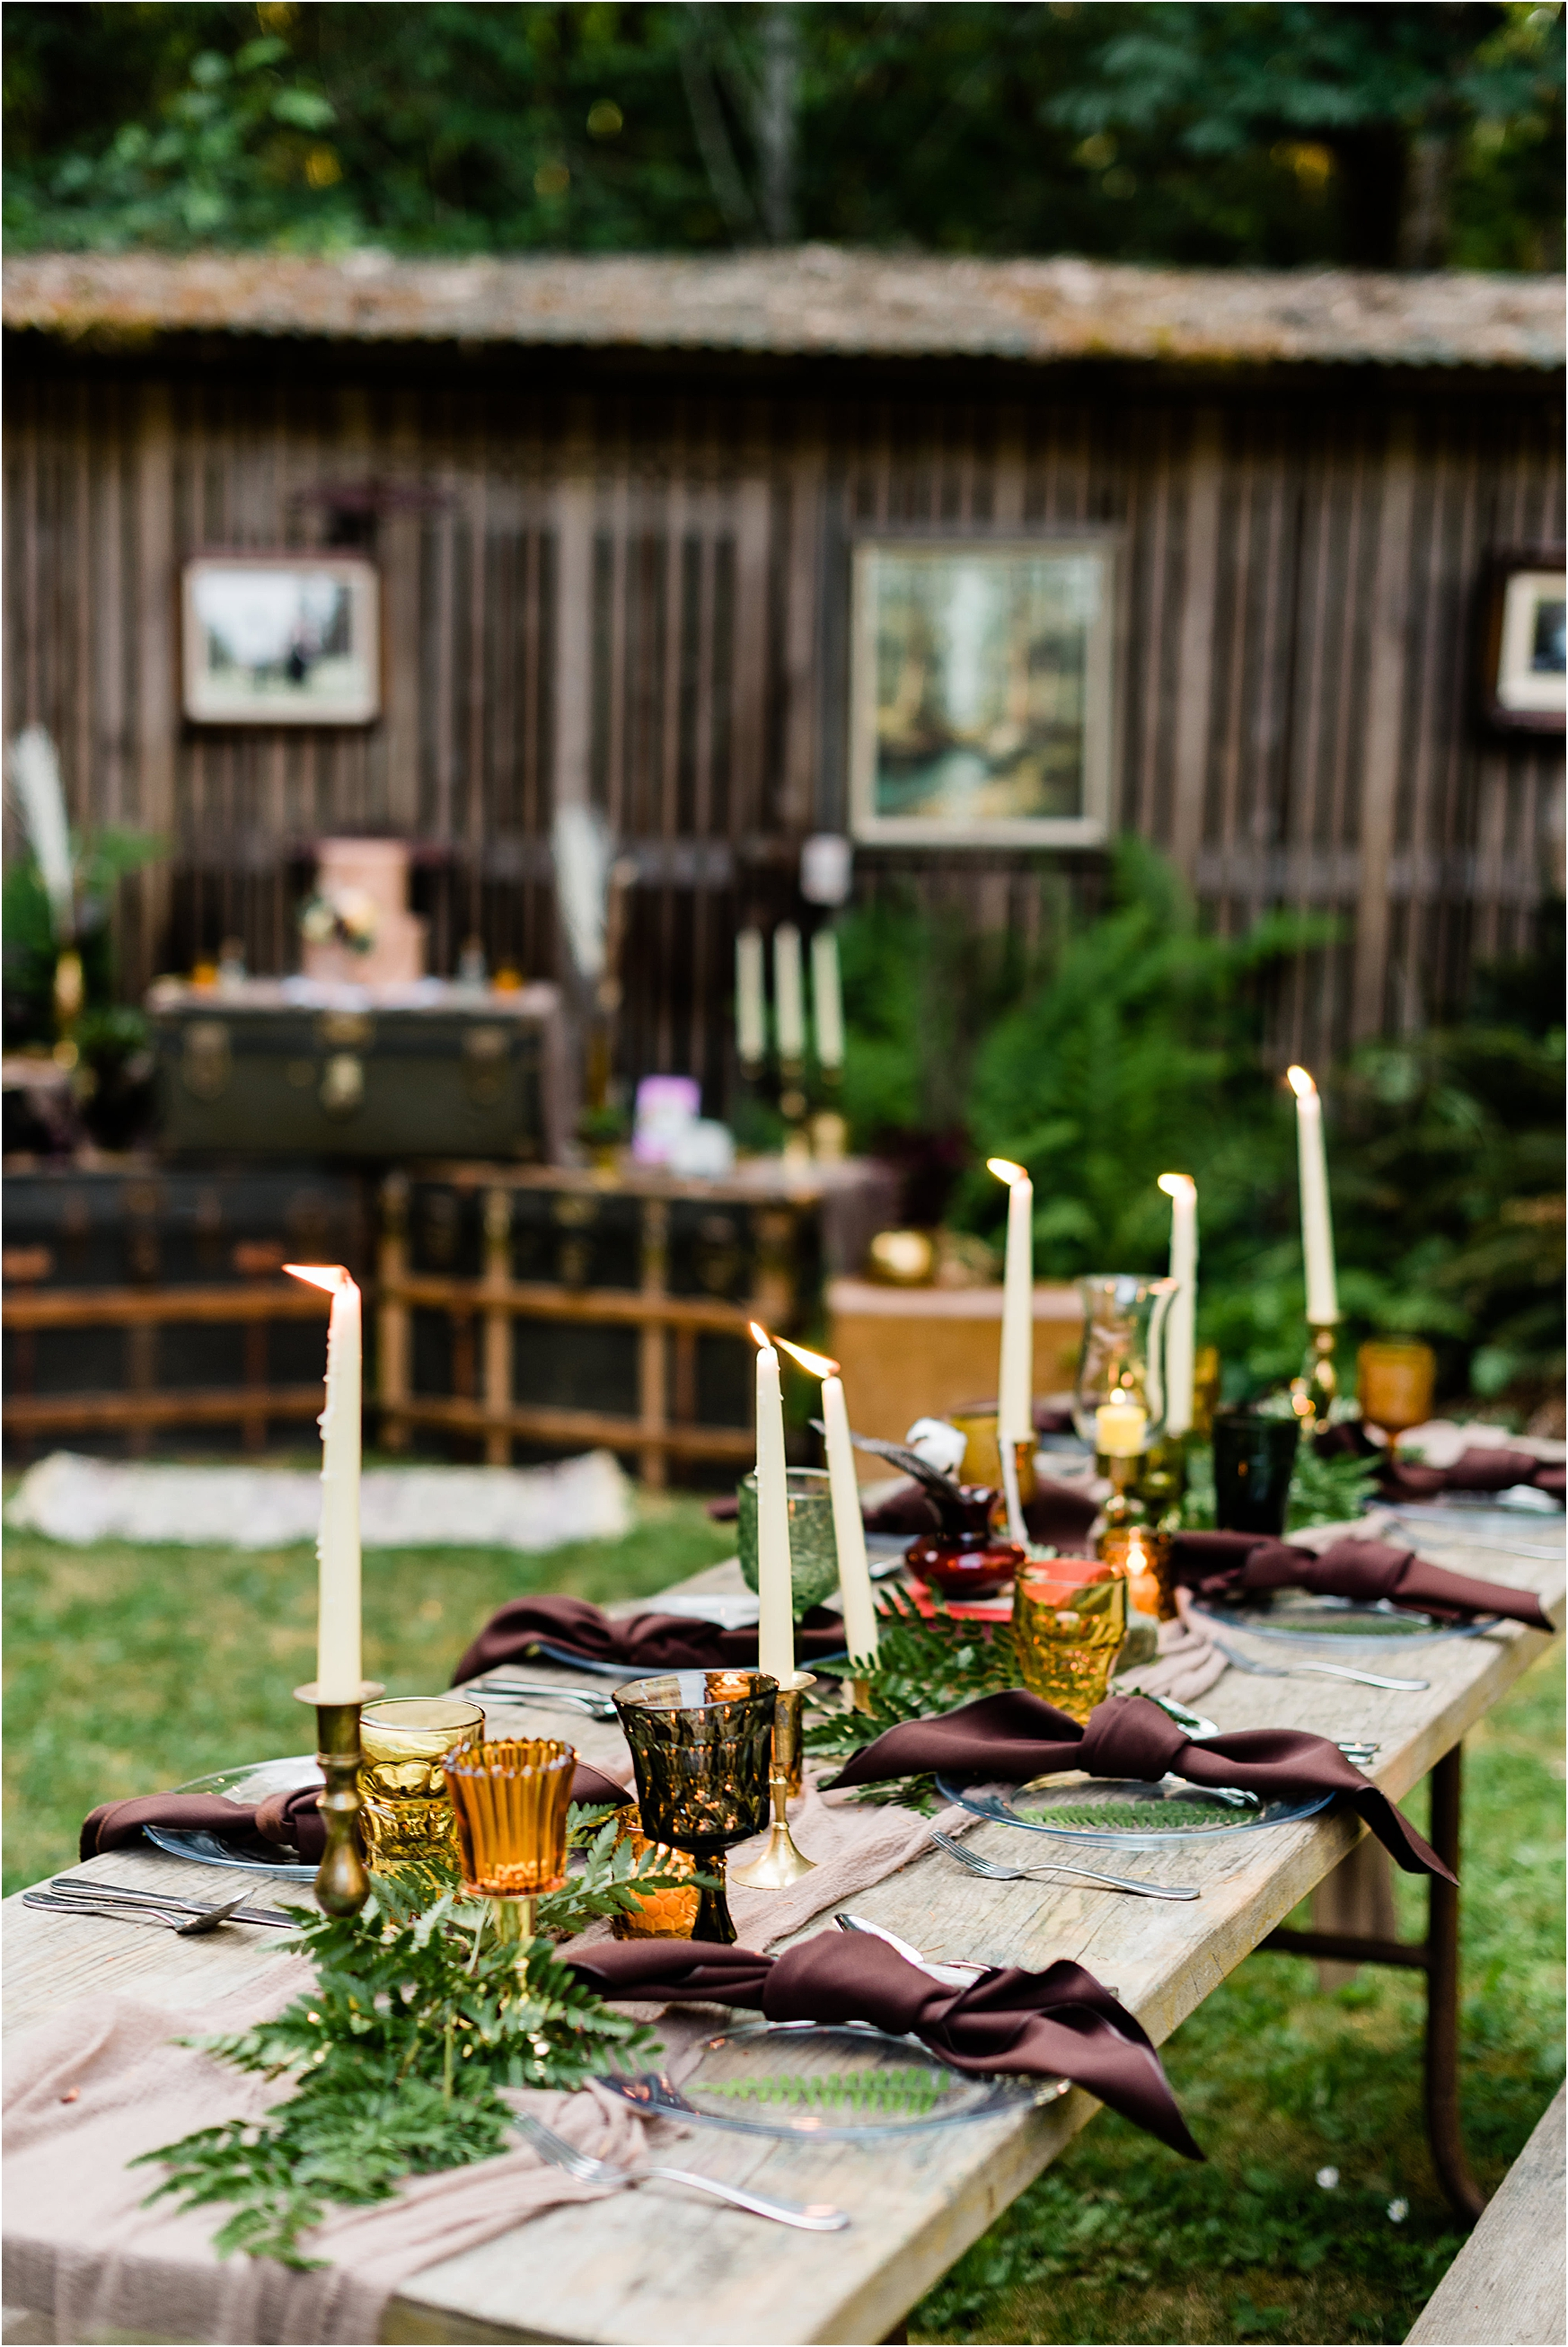 Table decor at Cassy & Viva's bohemian Oregon destination wedding at Camp Lane. Image by Forthright Photo.